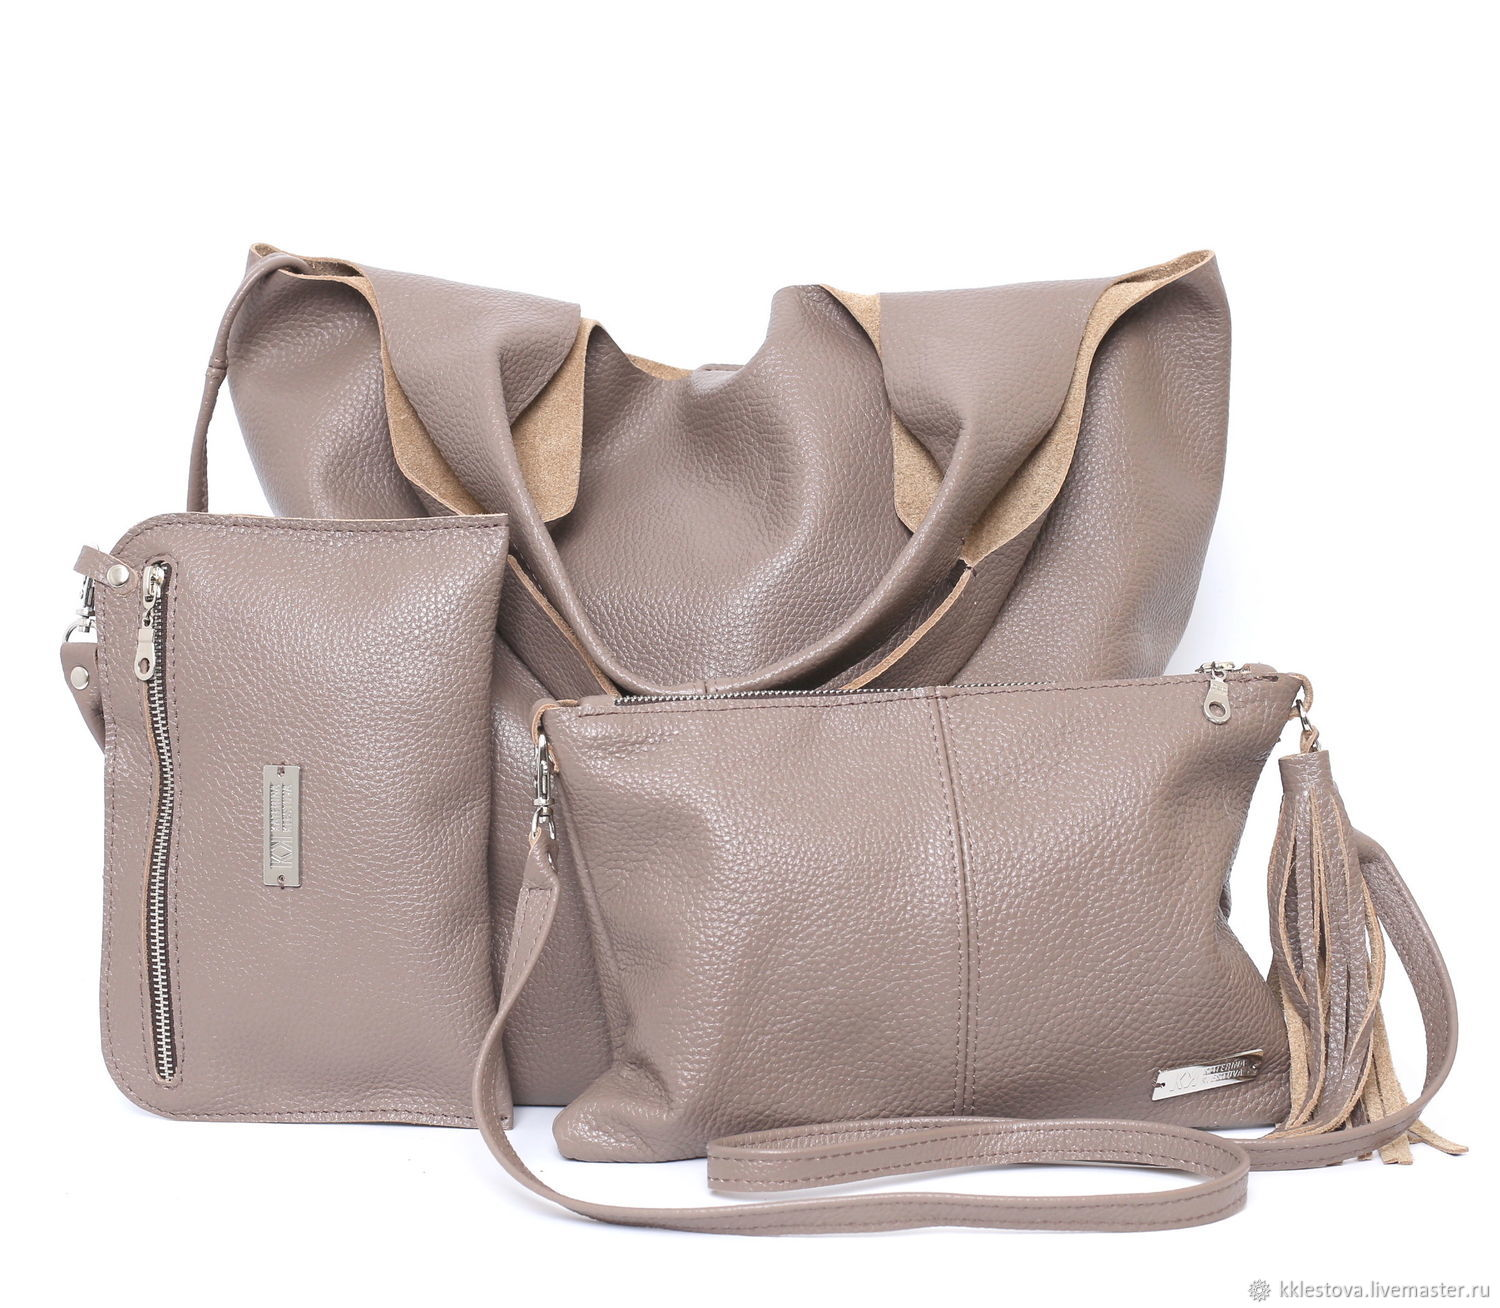 Beige leather bag bag with cosmetic bag Crossbody string Bag Package, Sacks, Moscow,  Фото №1